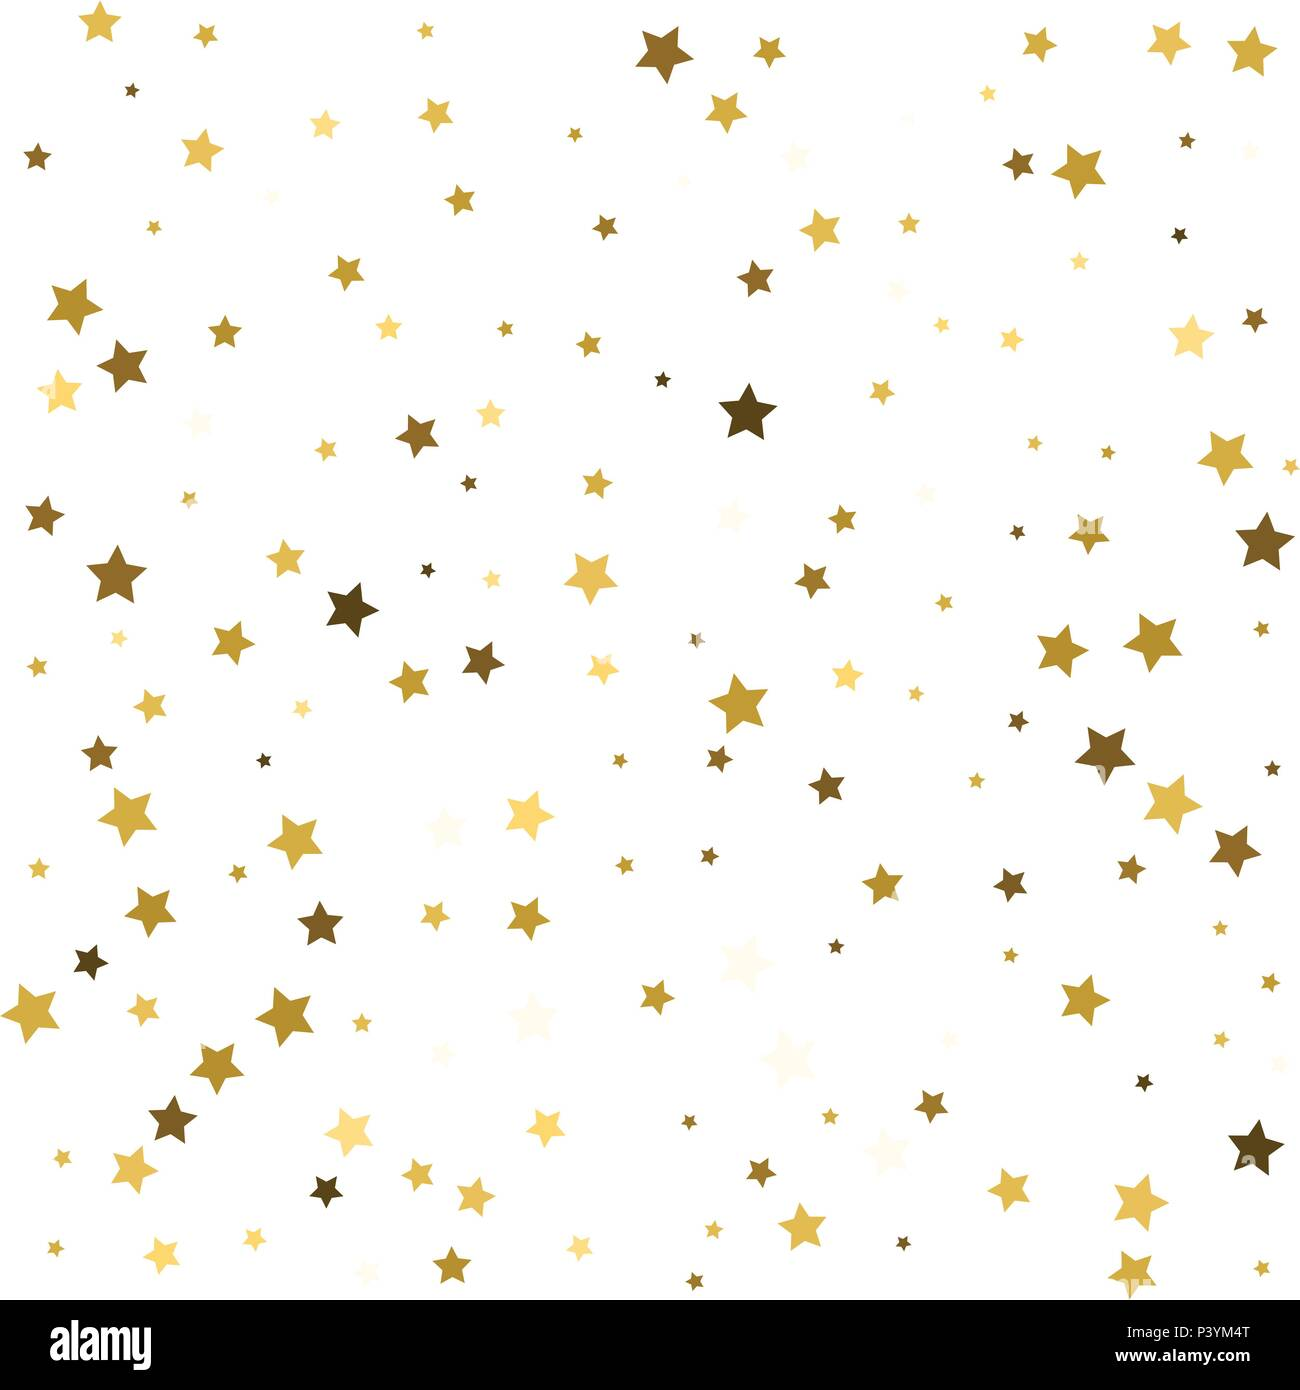 abstract pattern of random falling gold stars on white background glitter template for banner greeting card christmas and new year card invitation